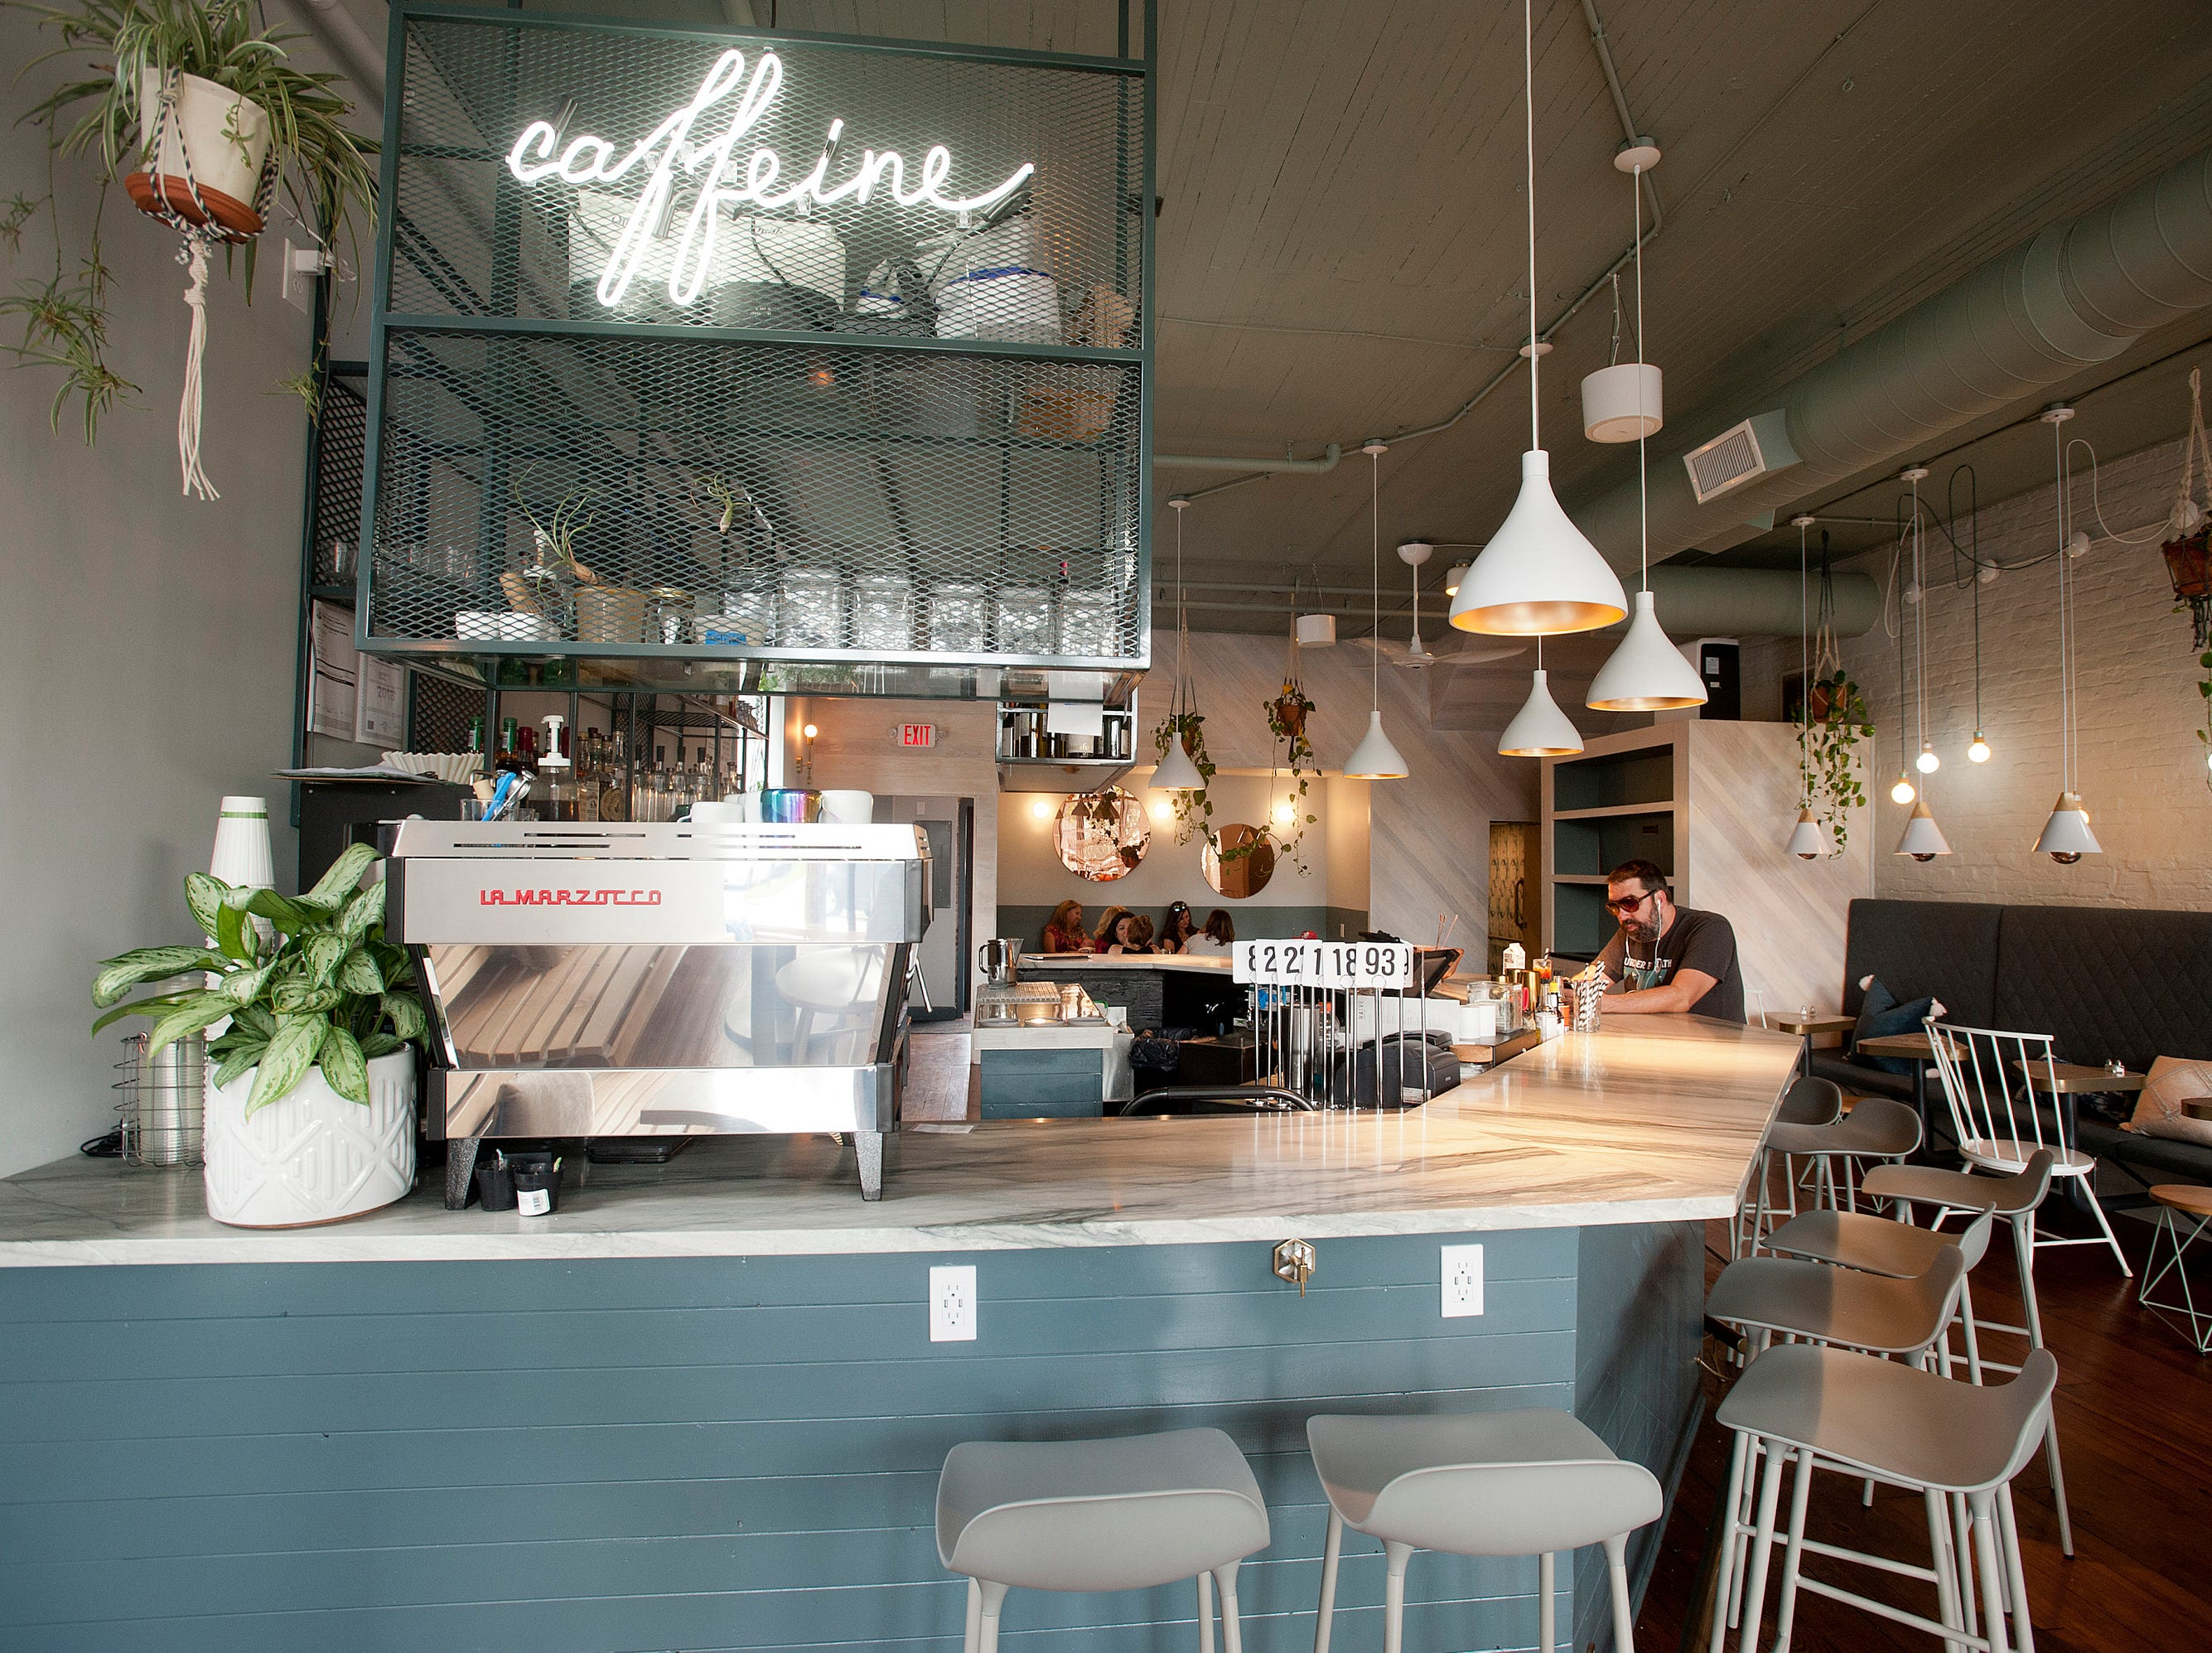 The coffee bar in Naive, a restaurant on E. Washington St.September 20, 2018